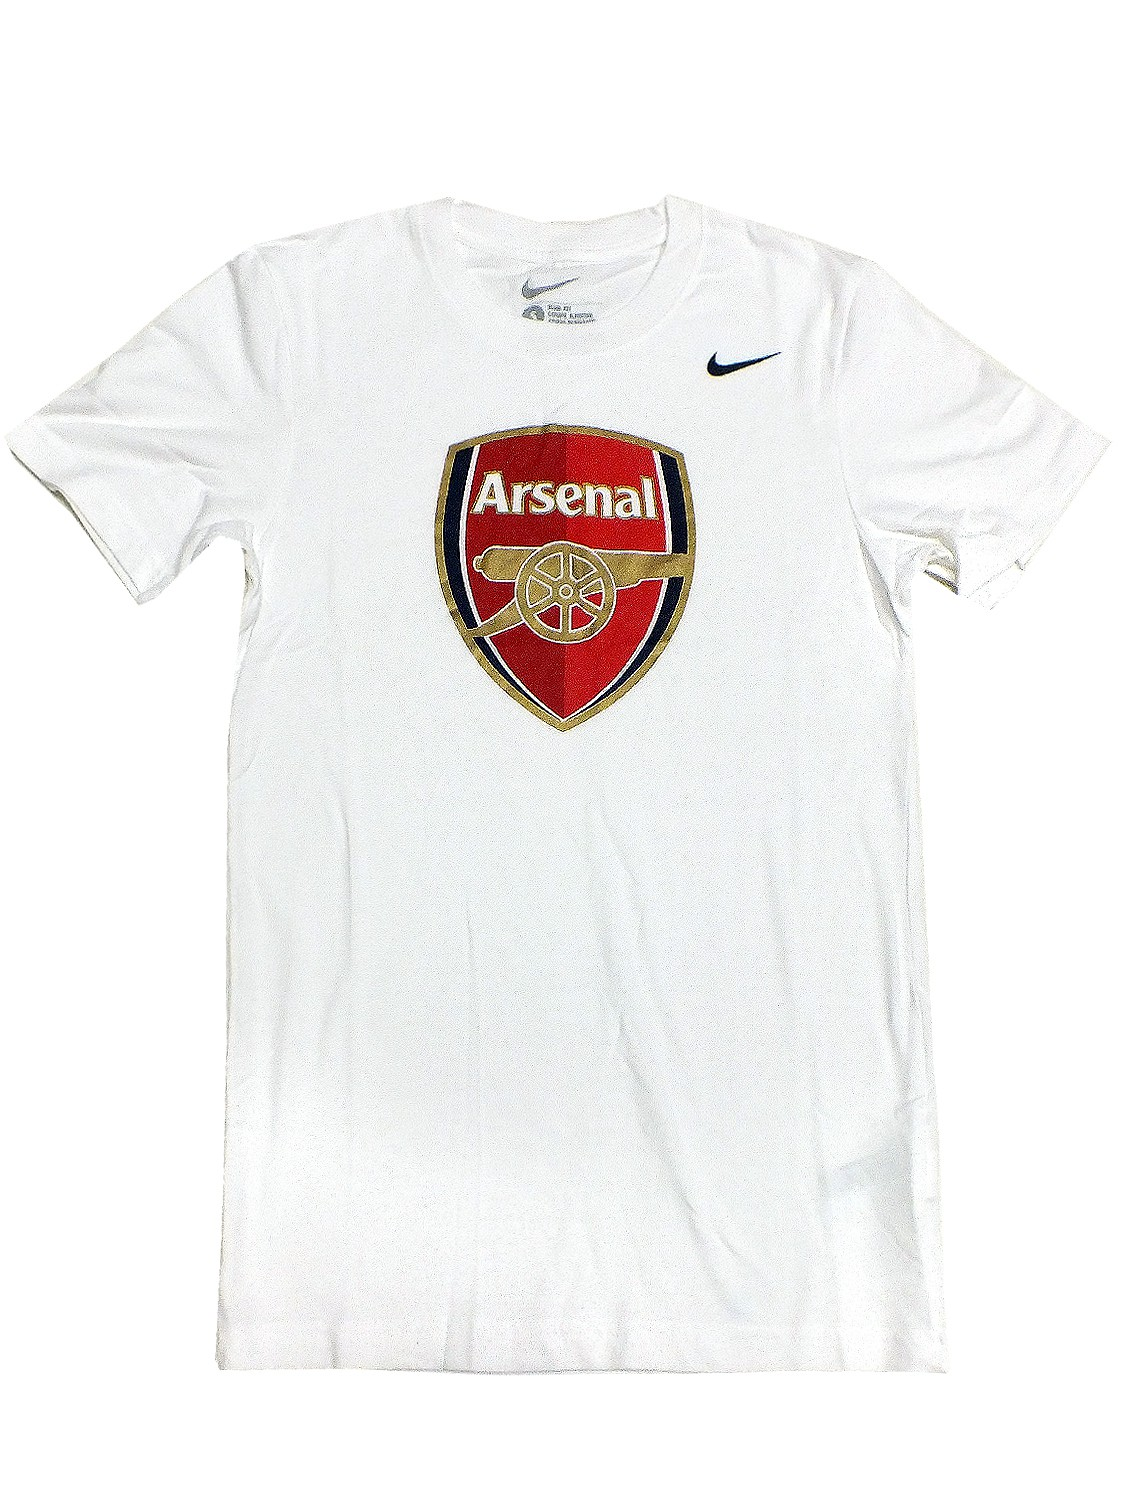 Nike arsenal t shirt 547195 weiss 100 shirt edel for Arsenal t shirts sale